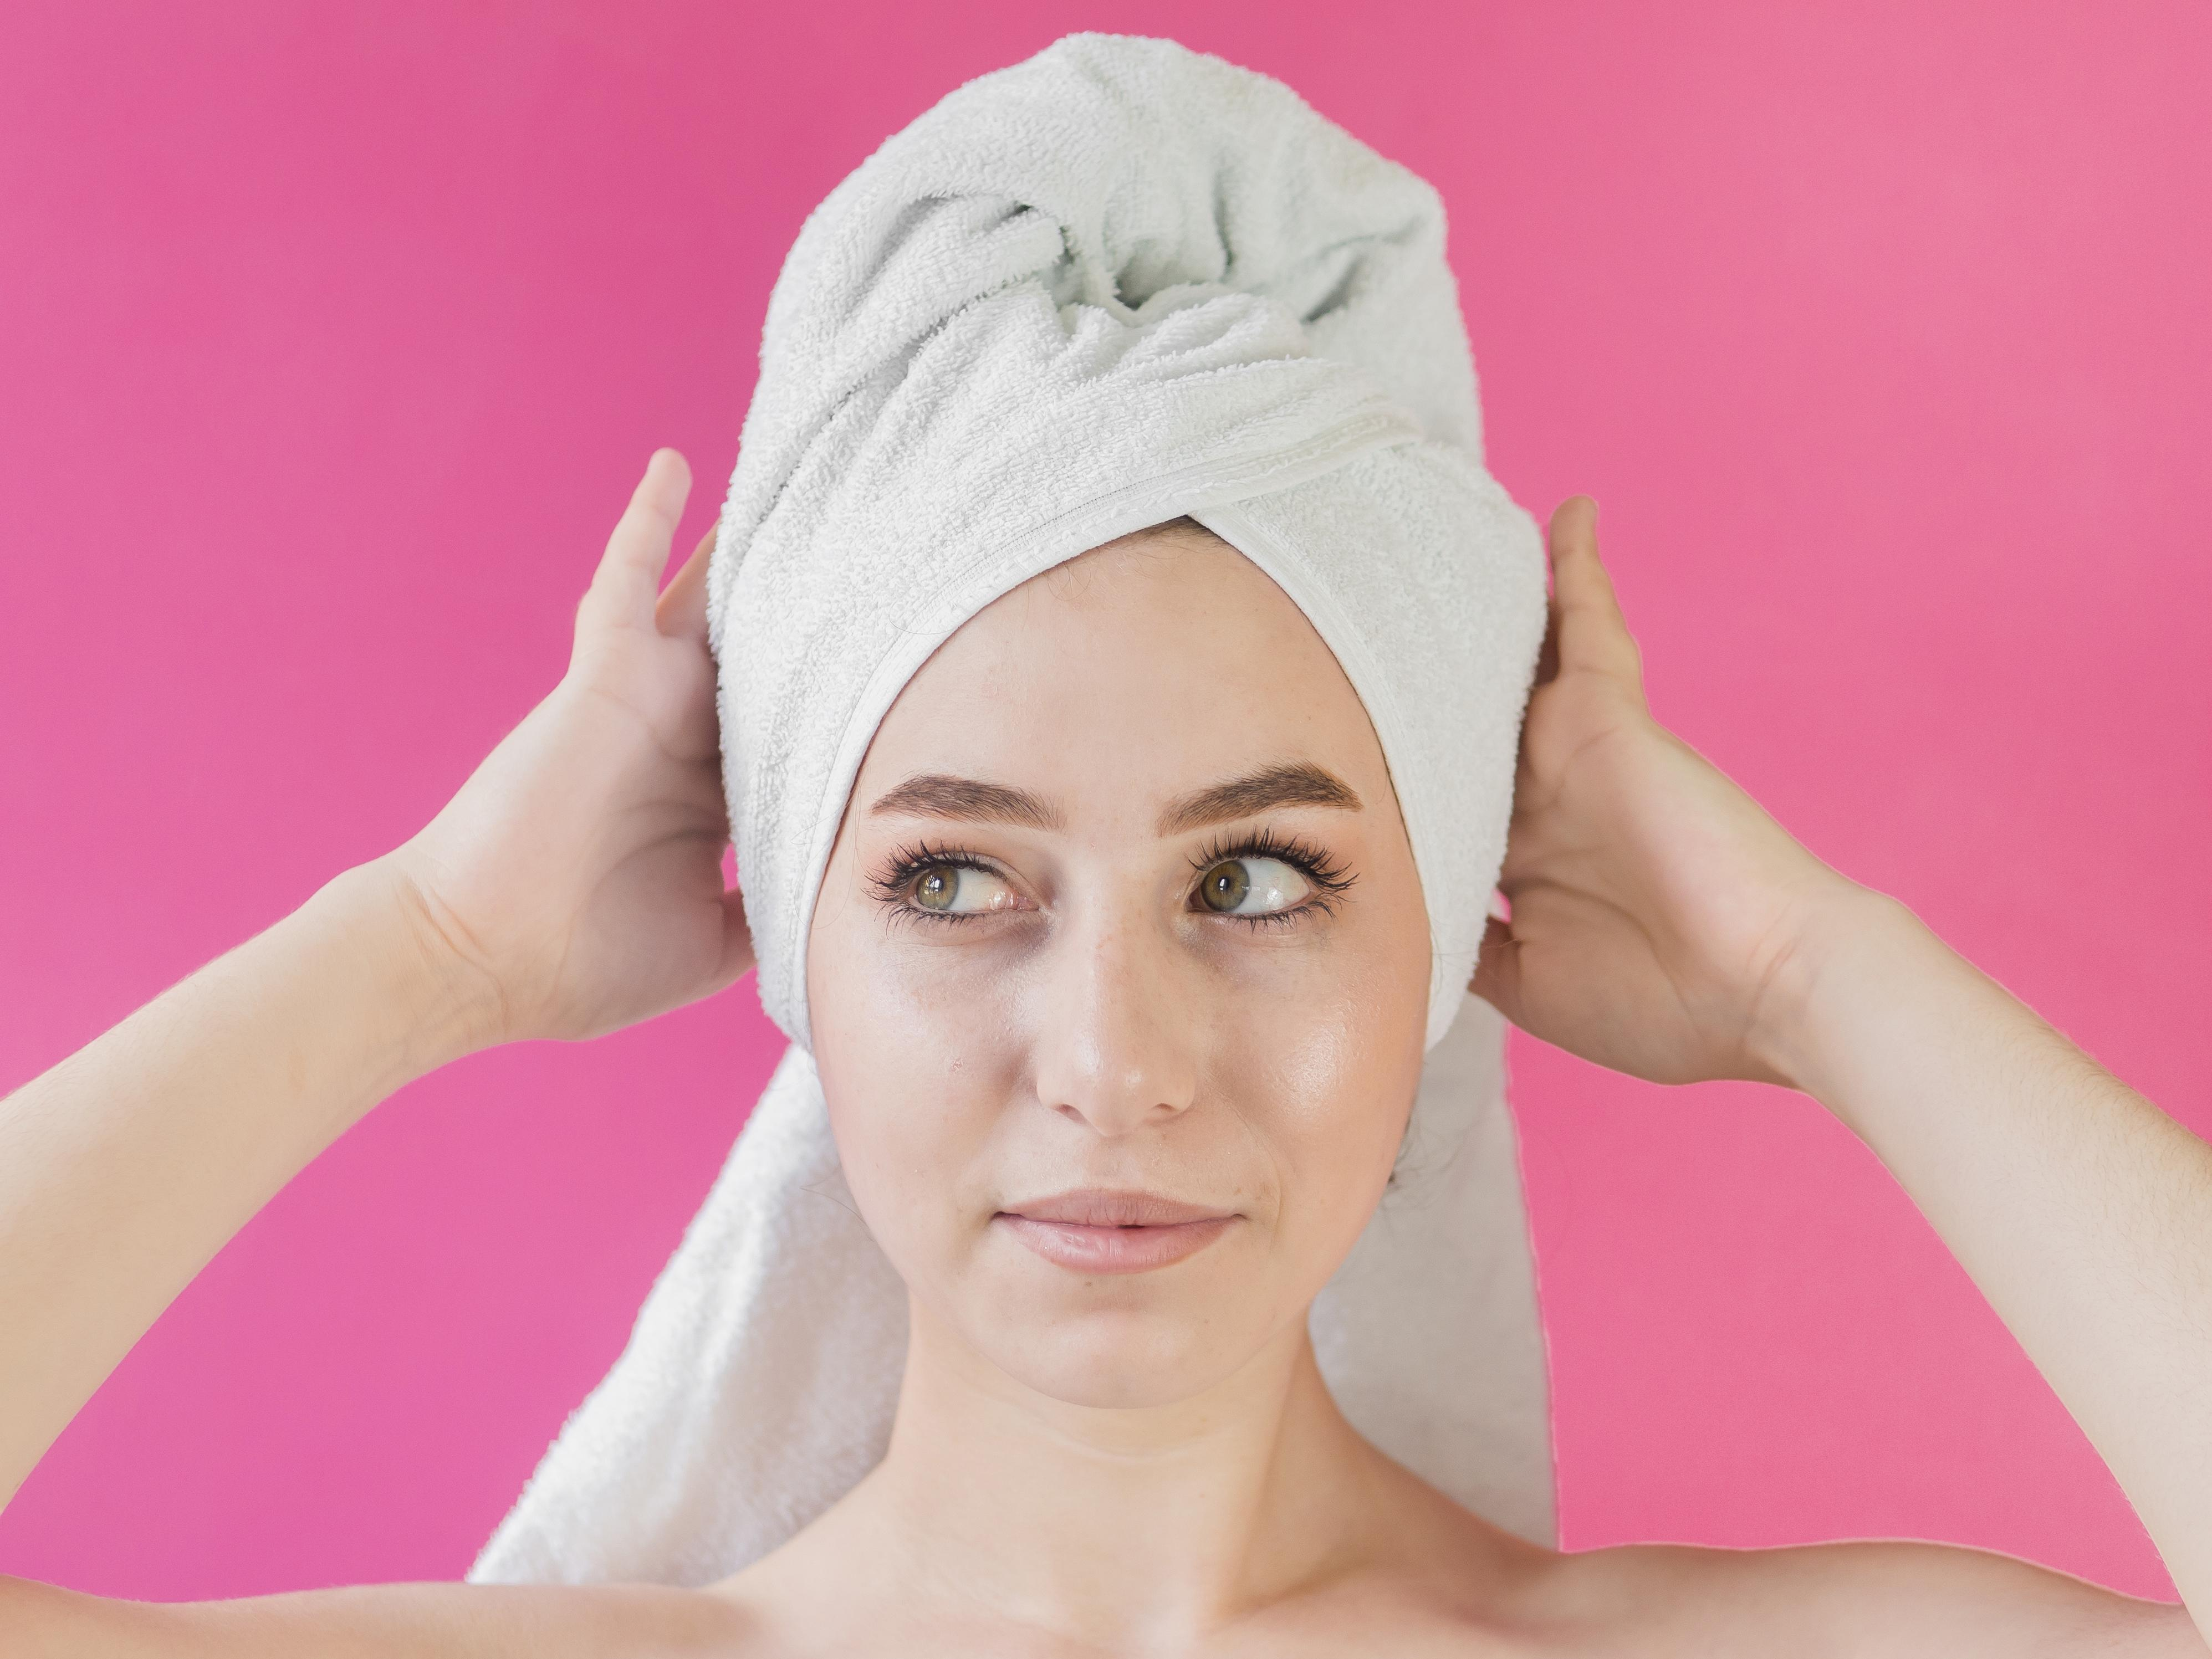 How to Protect Your Hair from Heat in the Sauna